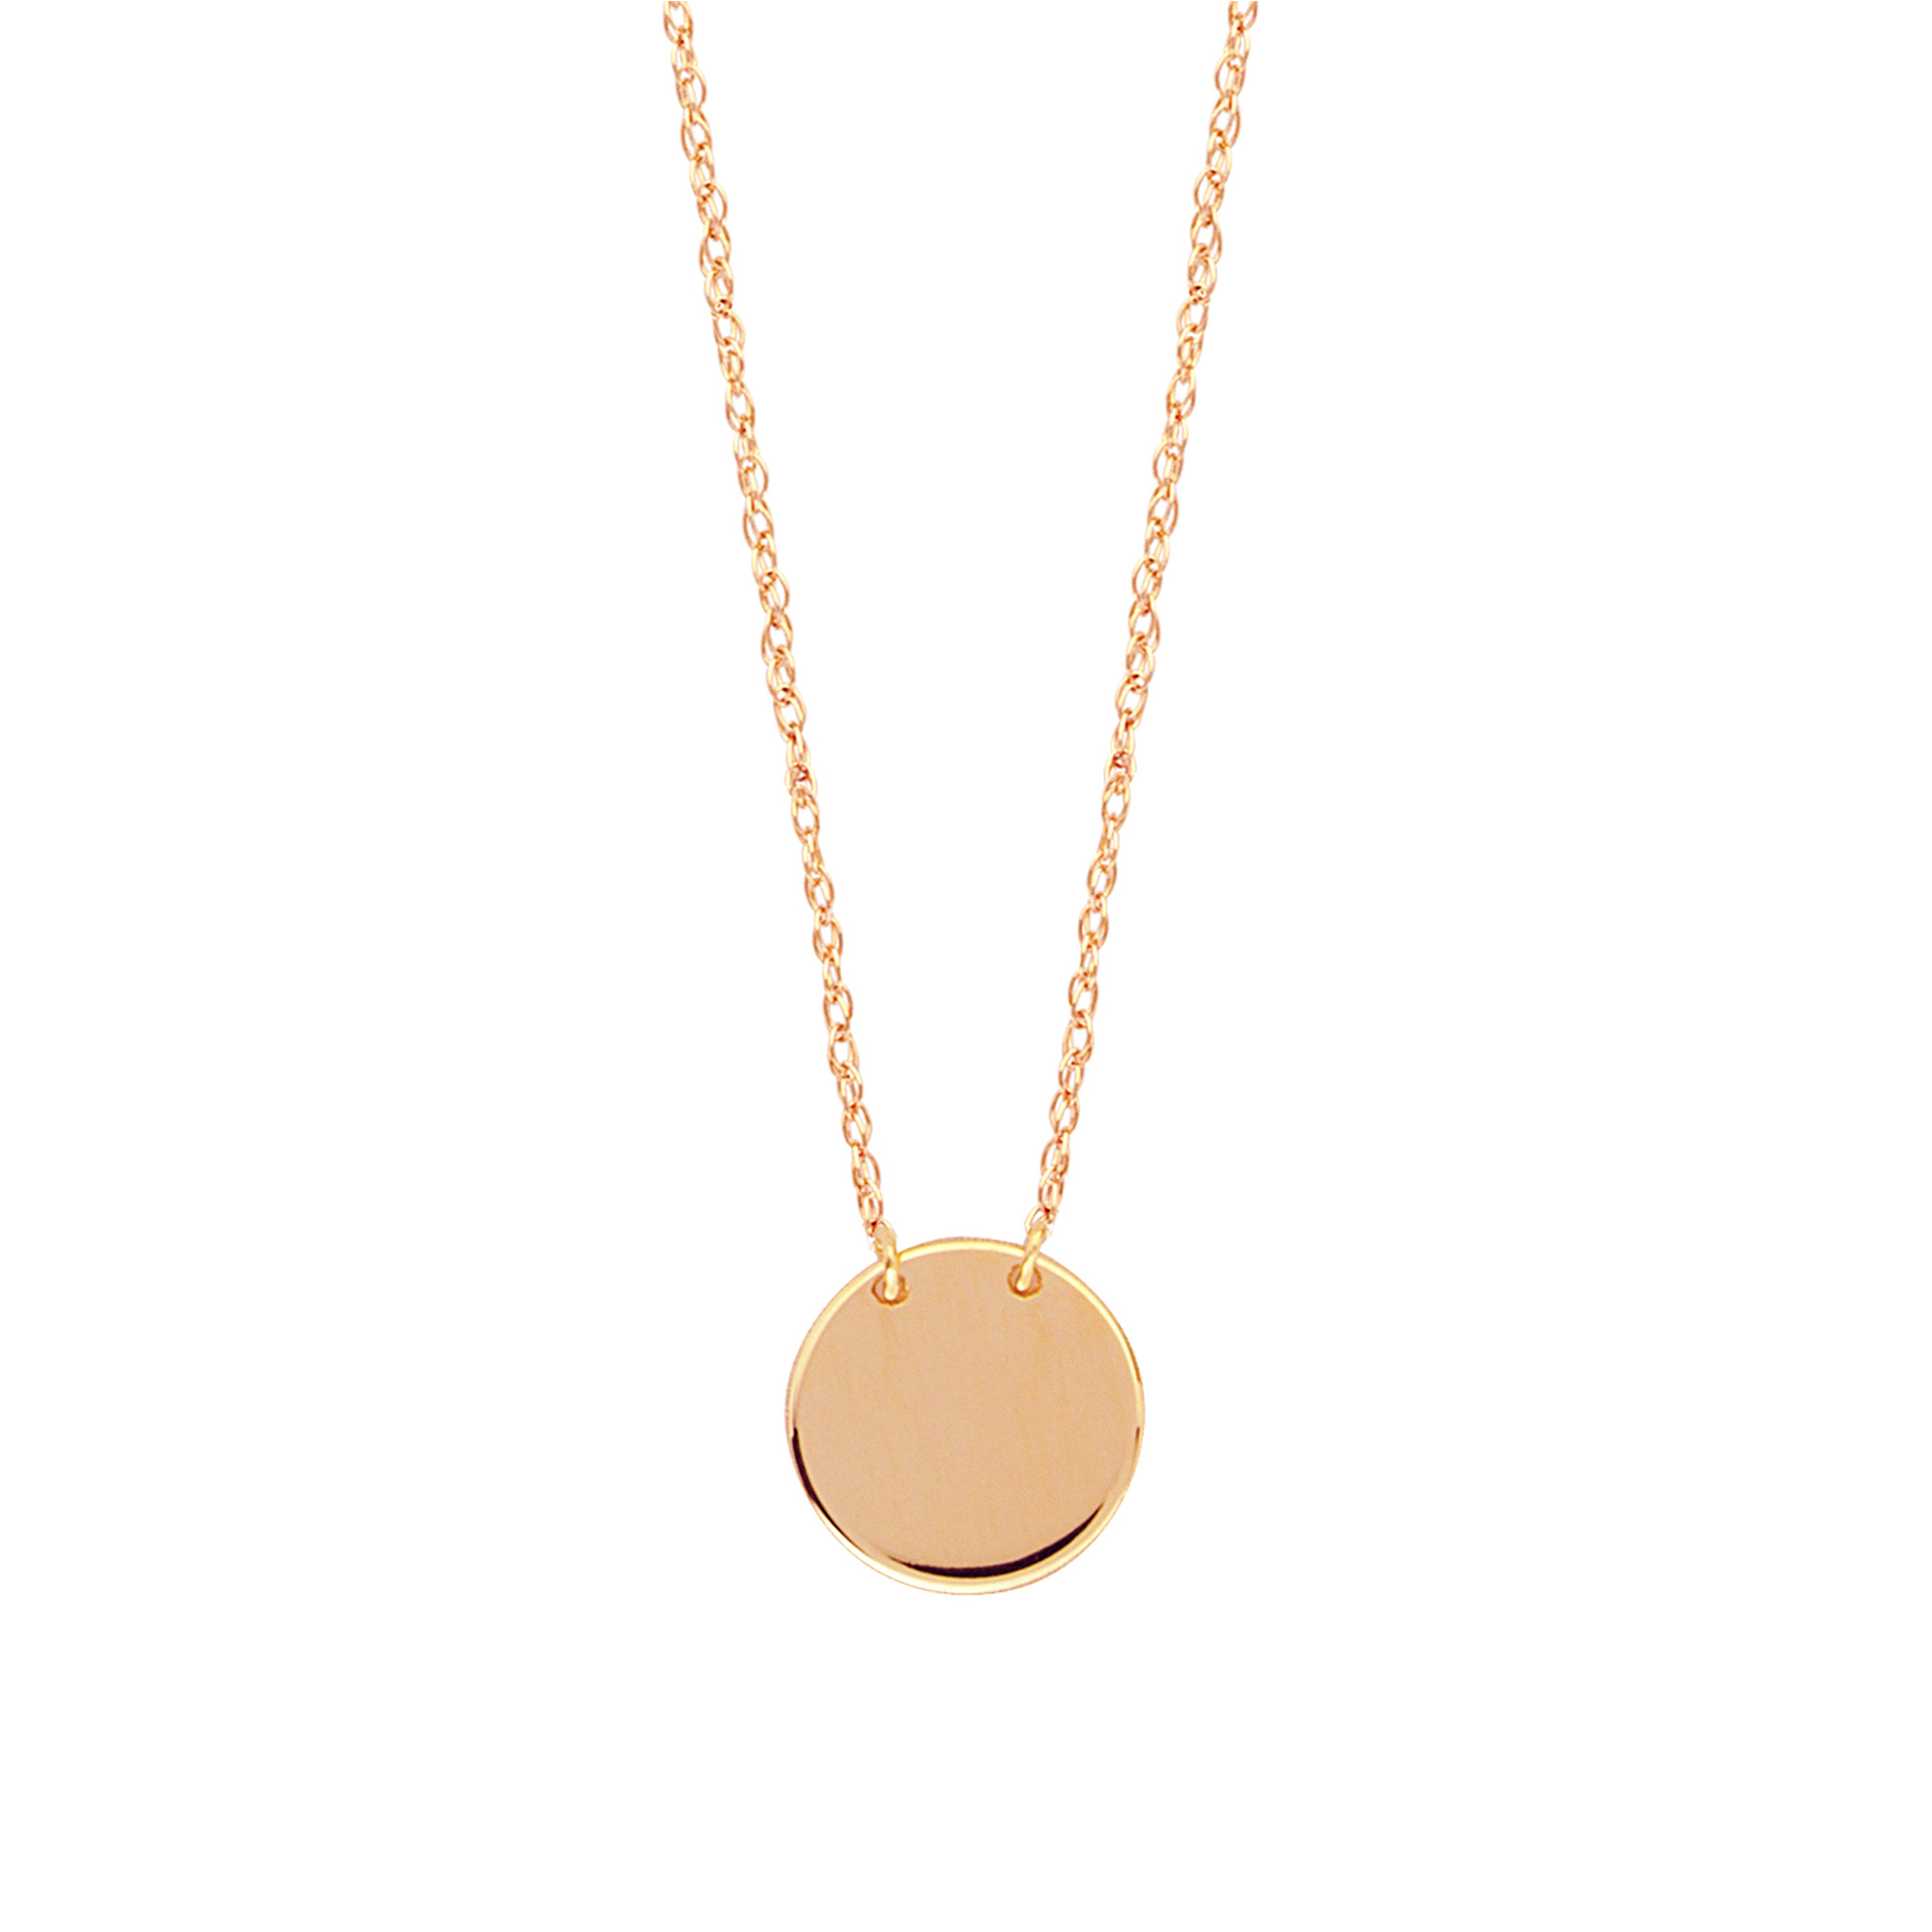 41c4481923f83 Details about 14K Rose Gold Mini Engravable Disk Pendant Necklace, 16 To 18  Inches Adjustable